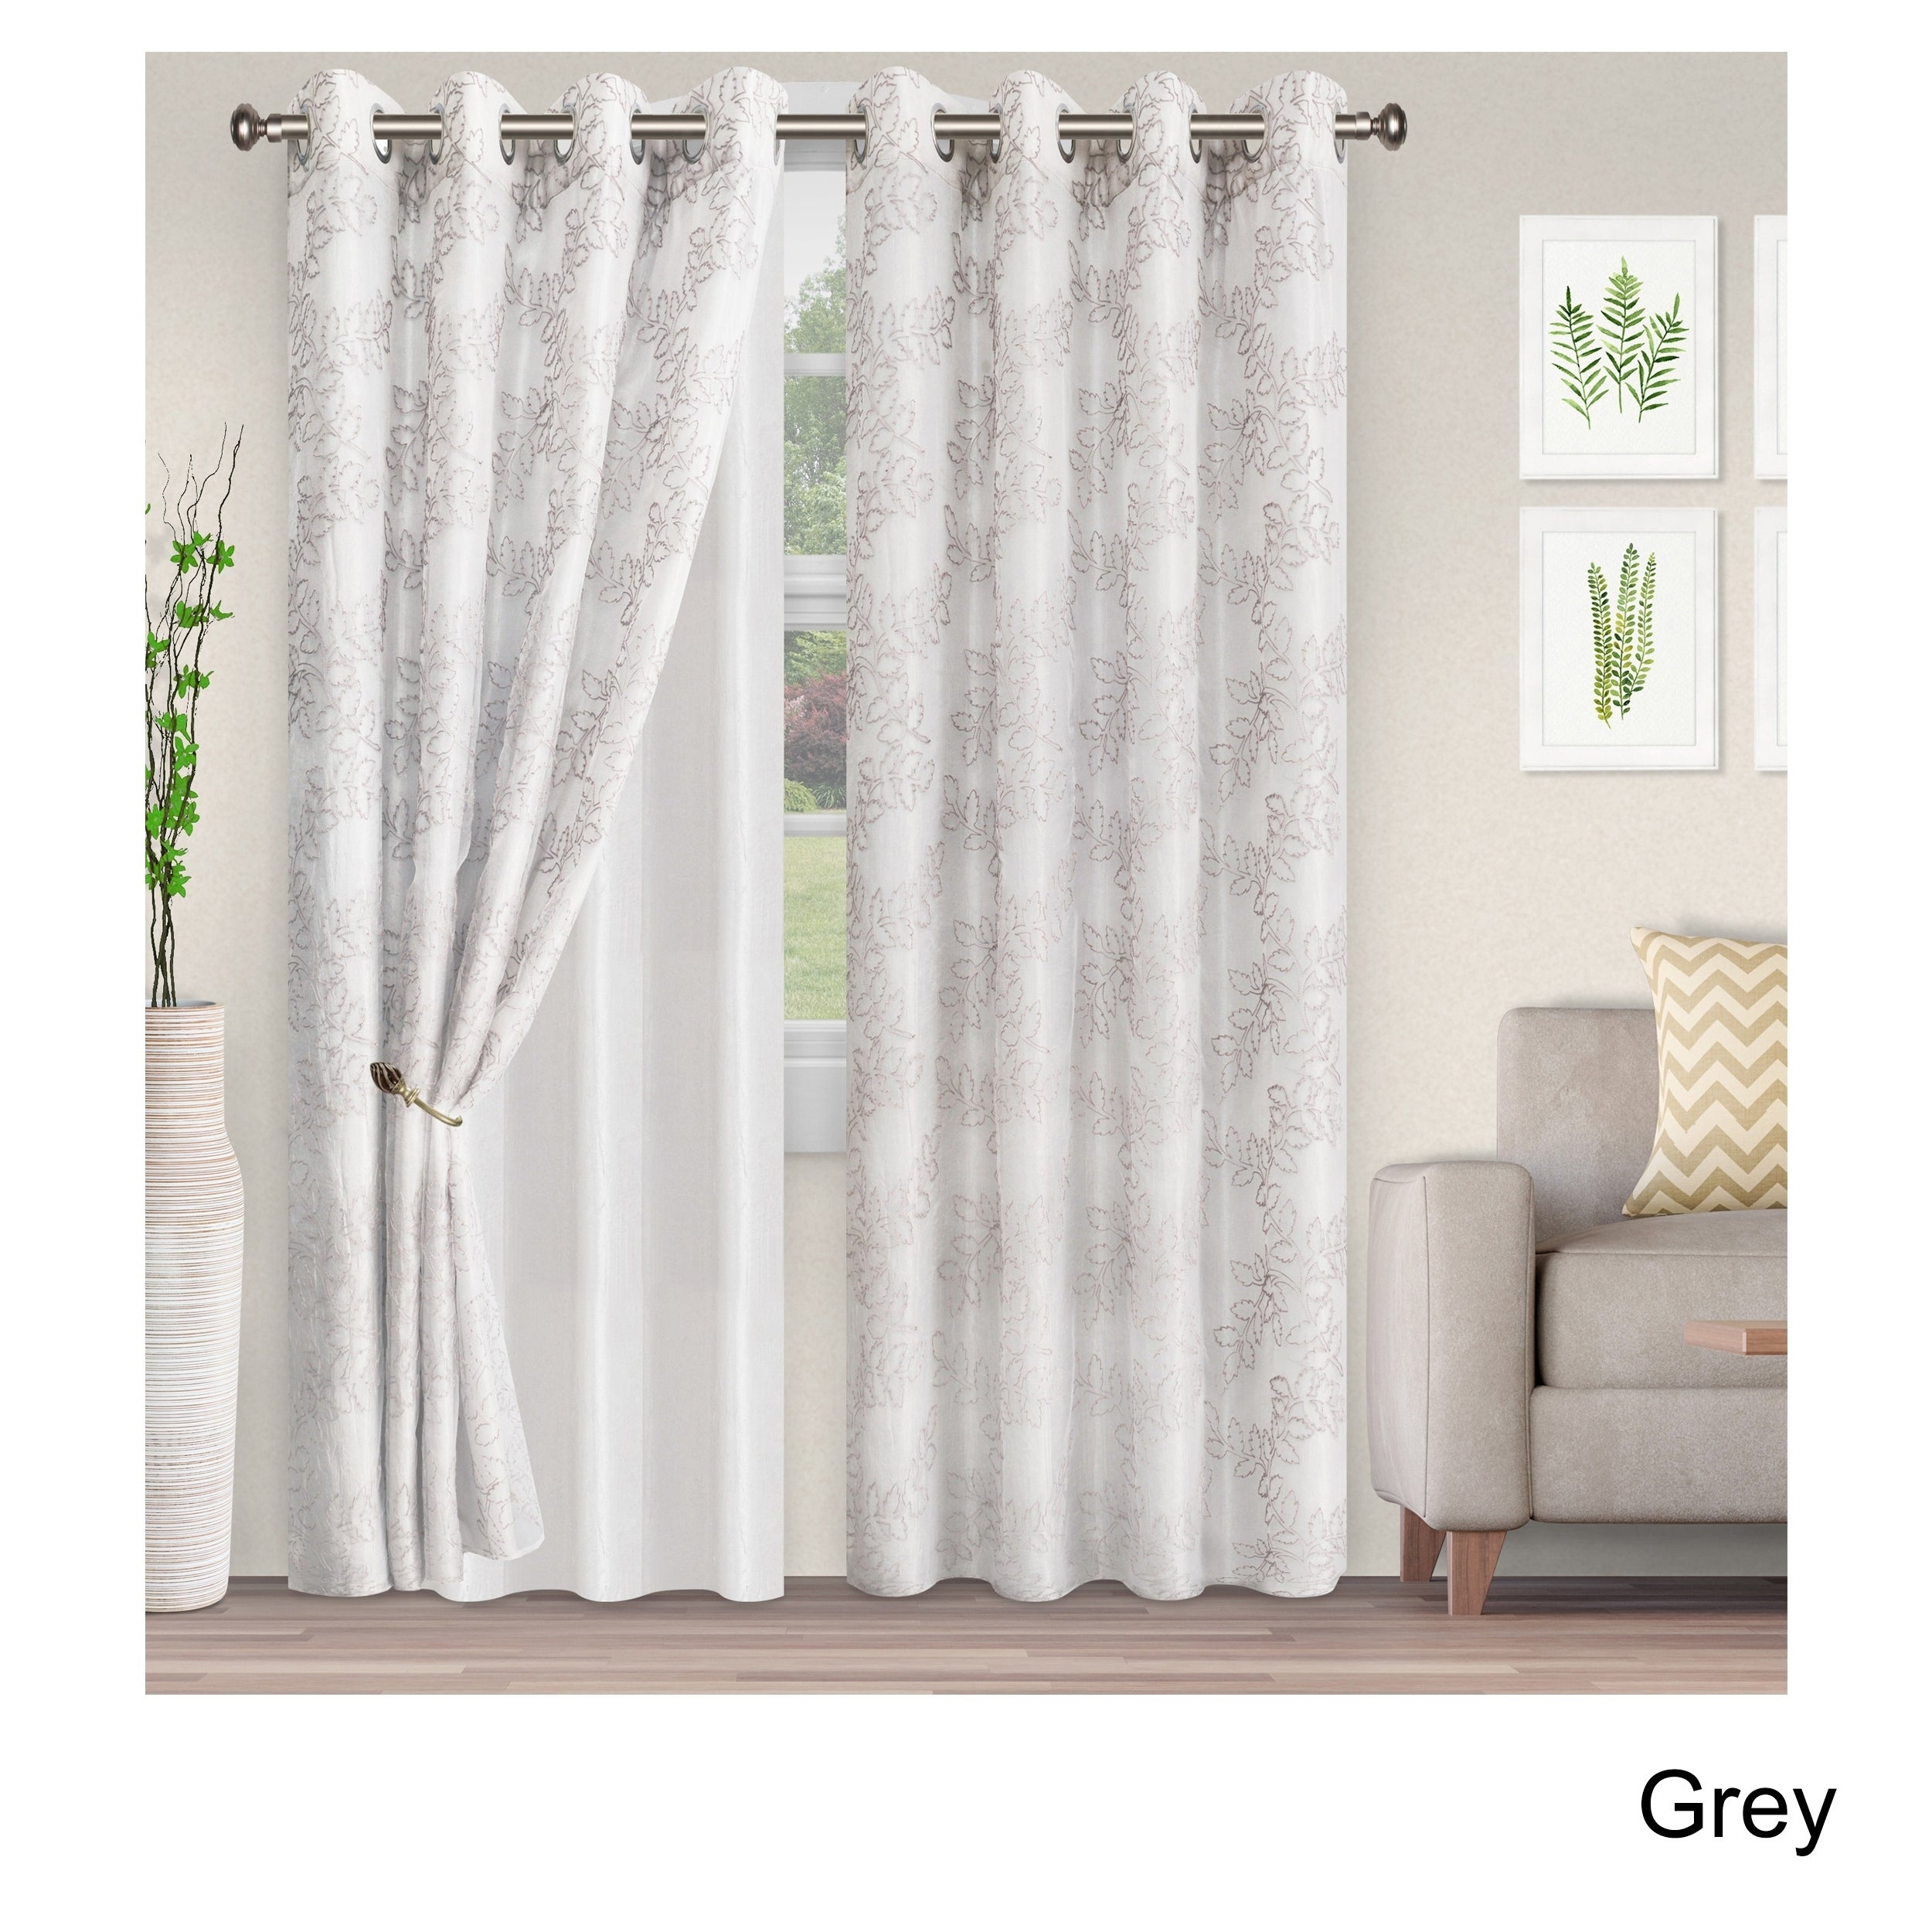 Superior Embroidered Foliage Sheer Grommet Curtain Panel Pair inside Luxury Collection Venetian Sheer Curtain Panel Pairs (Image 18 of 20)